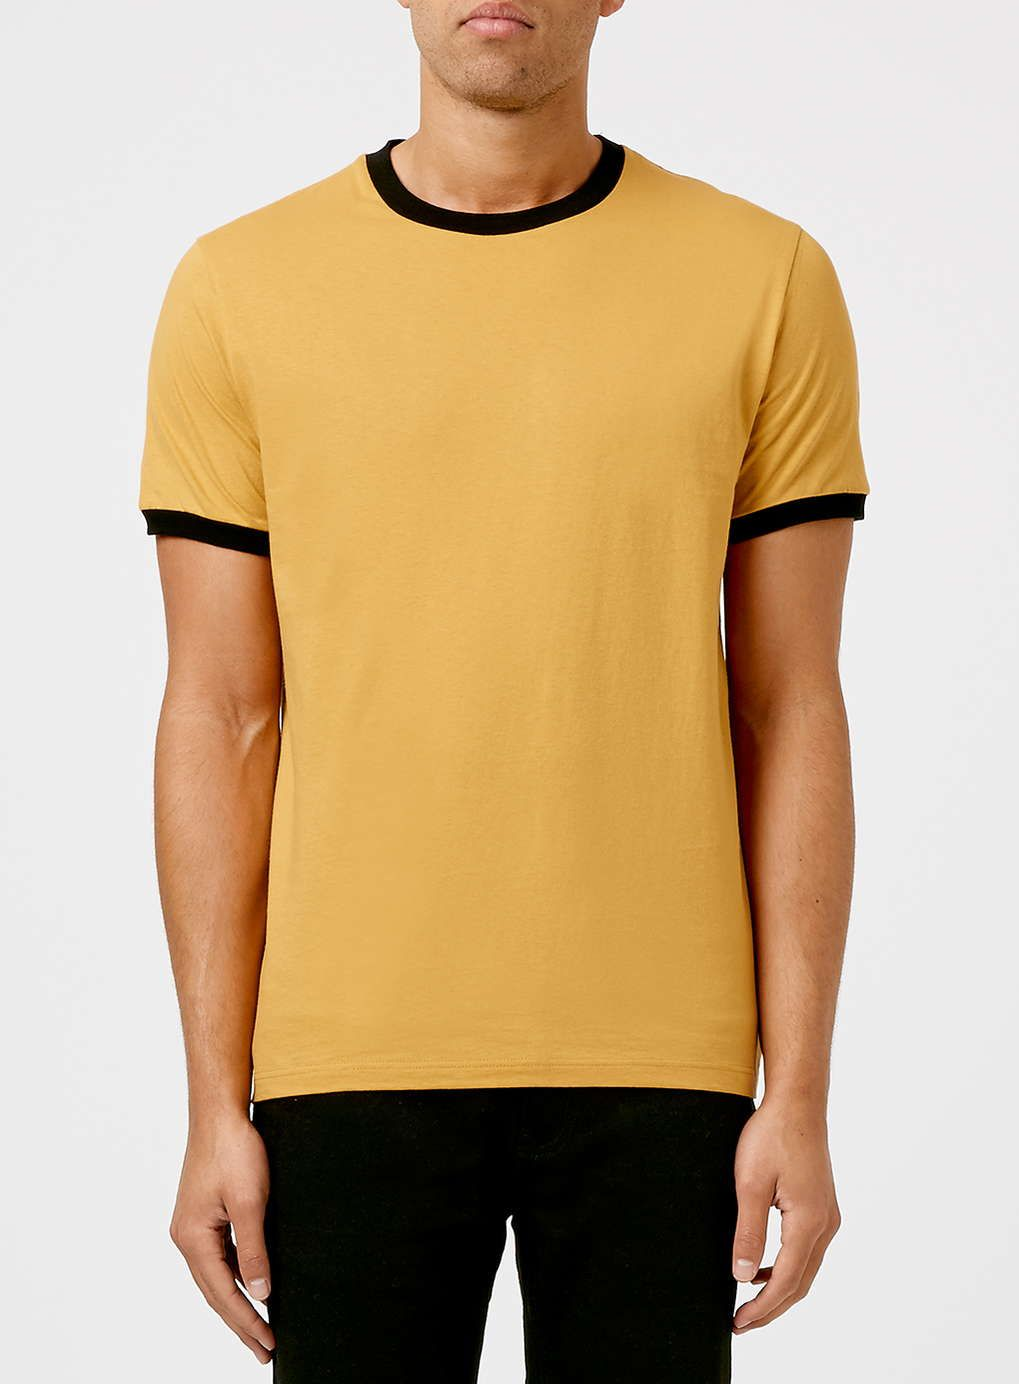 a23993295db Gold and Black Muscle Fit Ringer T-Shirt - Topman